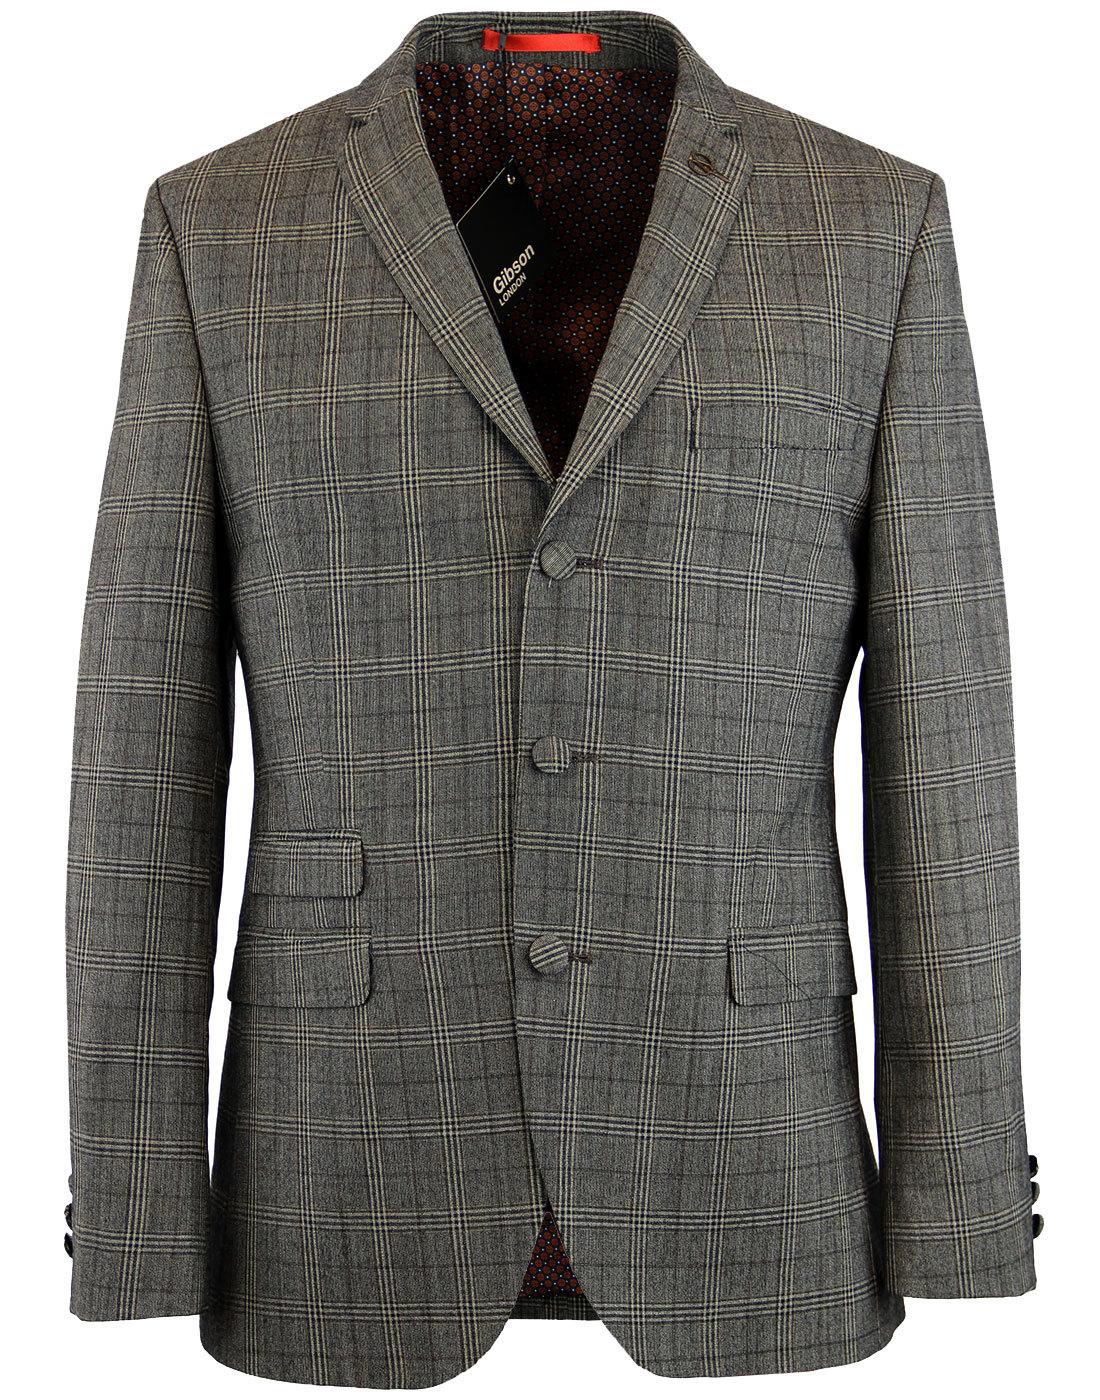 GIBSON LONDON Retro Check 3 Button Mod Suit Jacket